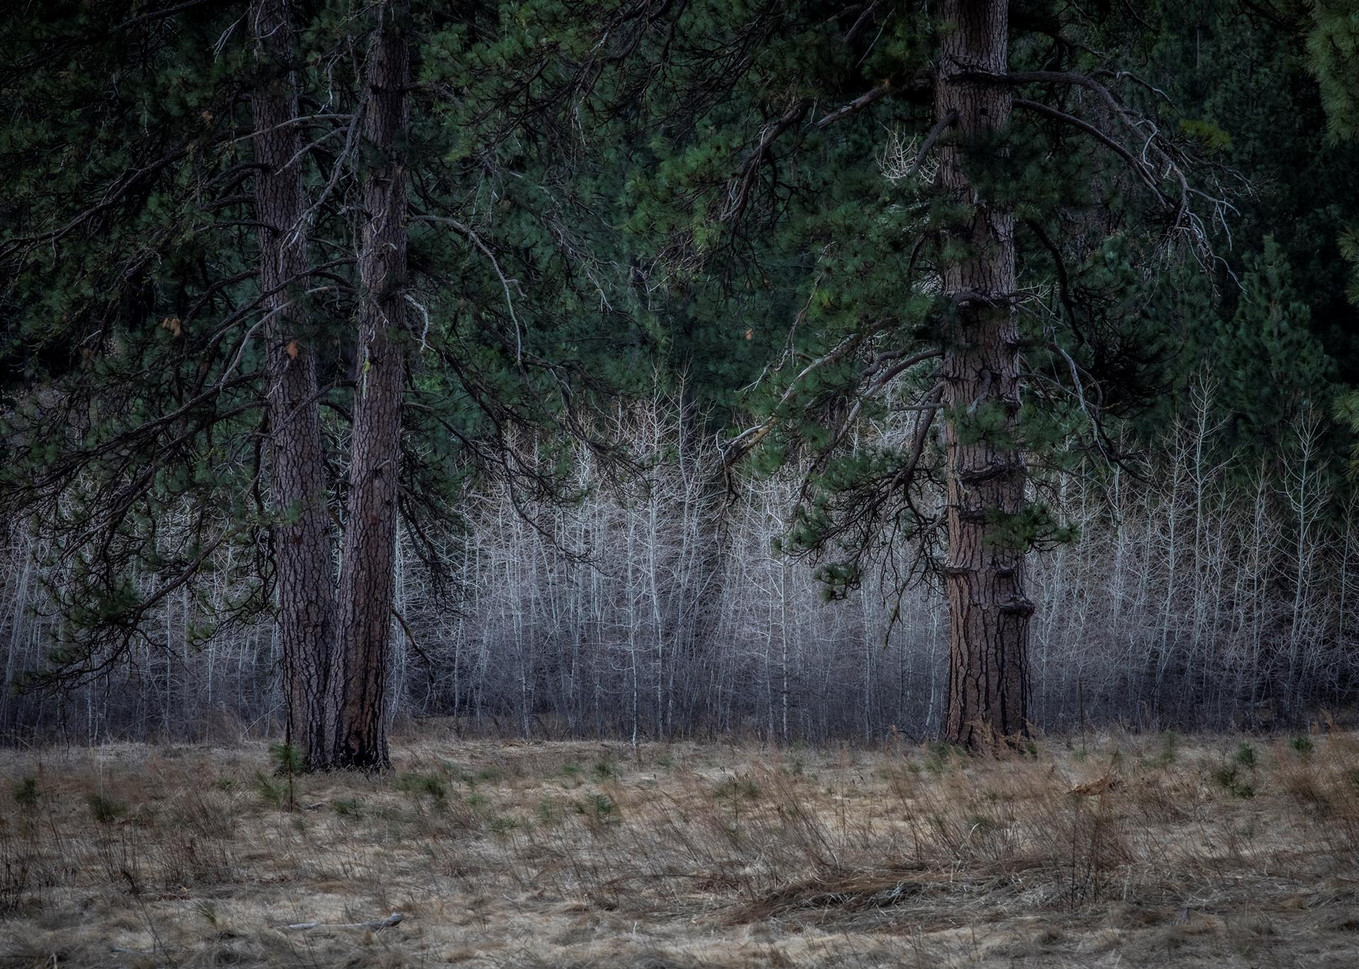 """Susan Conner (Altaville) Winter's Rest, 2020 Honorable Mention Photograph printed on metal 30"""" x 20"""" $350"""